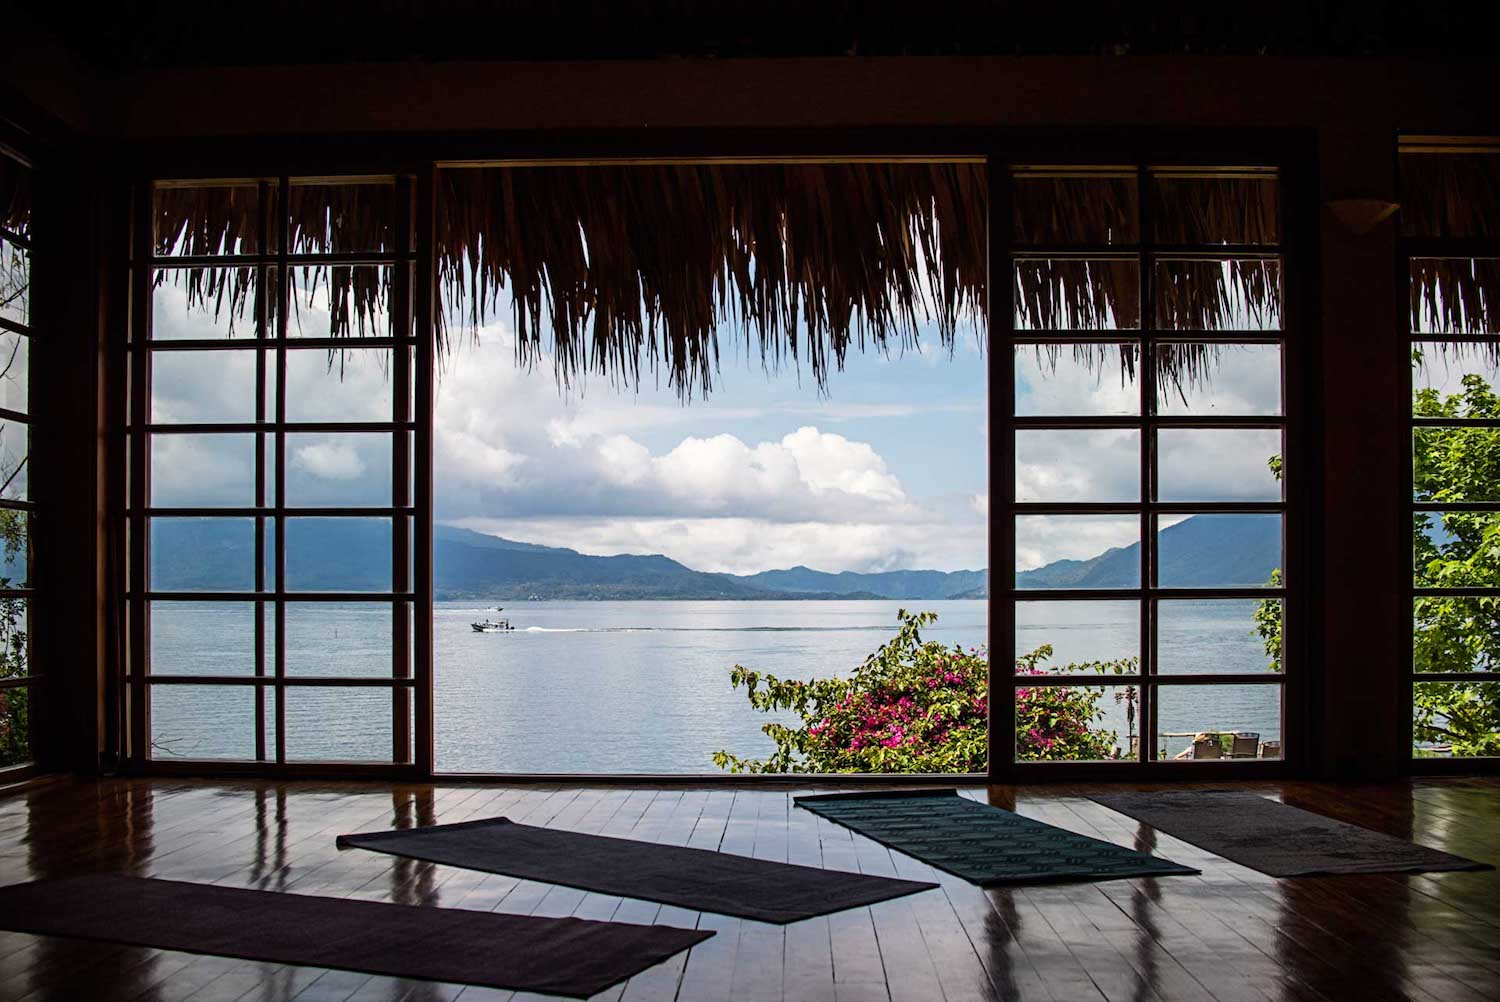 Yoga on Lake Atitlán - While San Marcos may be the lake's designated yogi village, our favorite retreat is in Santa Cruz, a low-key, car-free village only accessible by boat. Woman-owned Villa Sumaya is a lake-front, ecologically sustainable property offering personal and group retreats, 22 unique and beautifully appointed guest rooms, and a spa. The onsite restaurant focuses on organic ingredients sourced directly from their gardens or local producers. Whether you're laying down your yoga mat or relaxing in the hammock on your room's private patio, the views throughout this special property are magnificent.